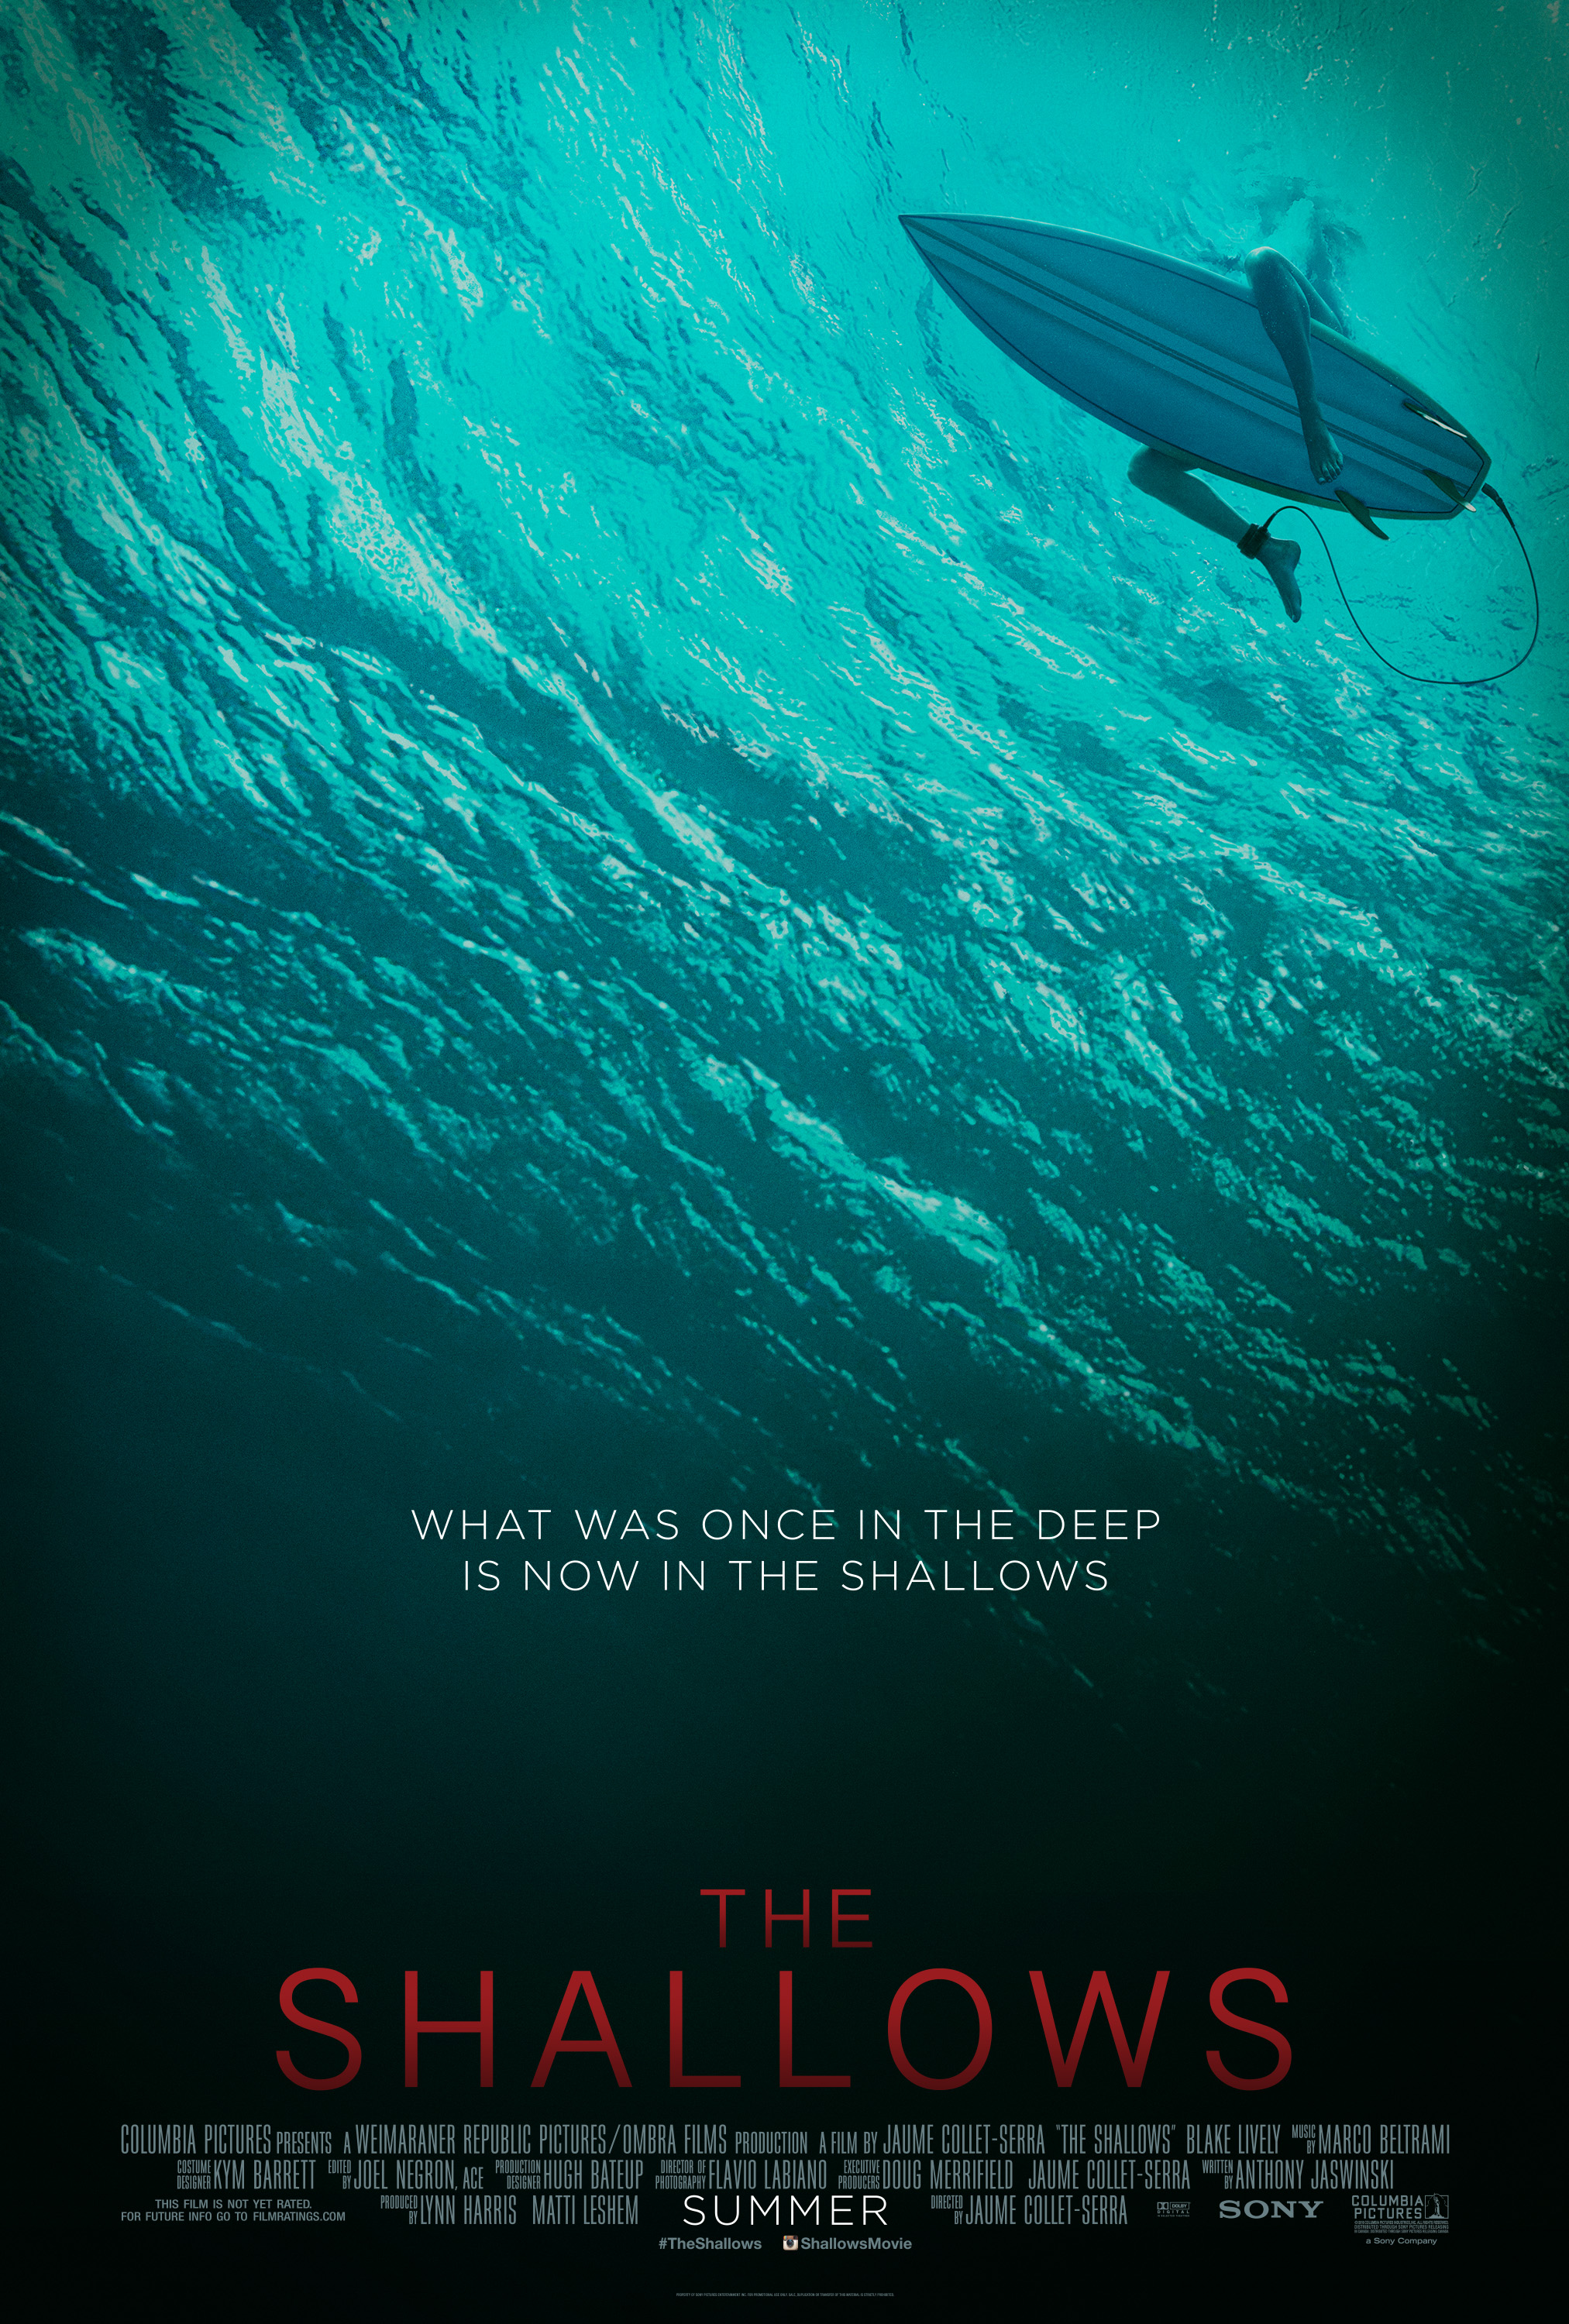 The Shallows (2016) Technical Specifications